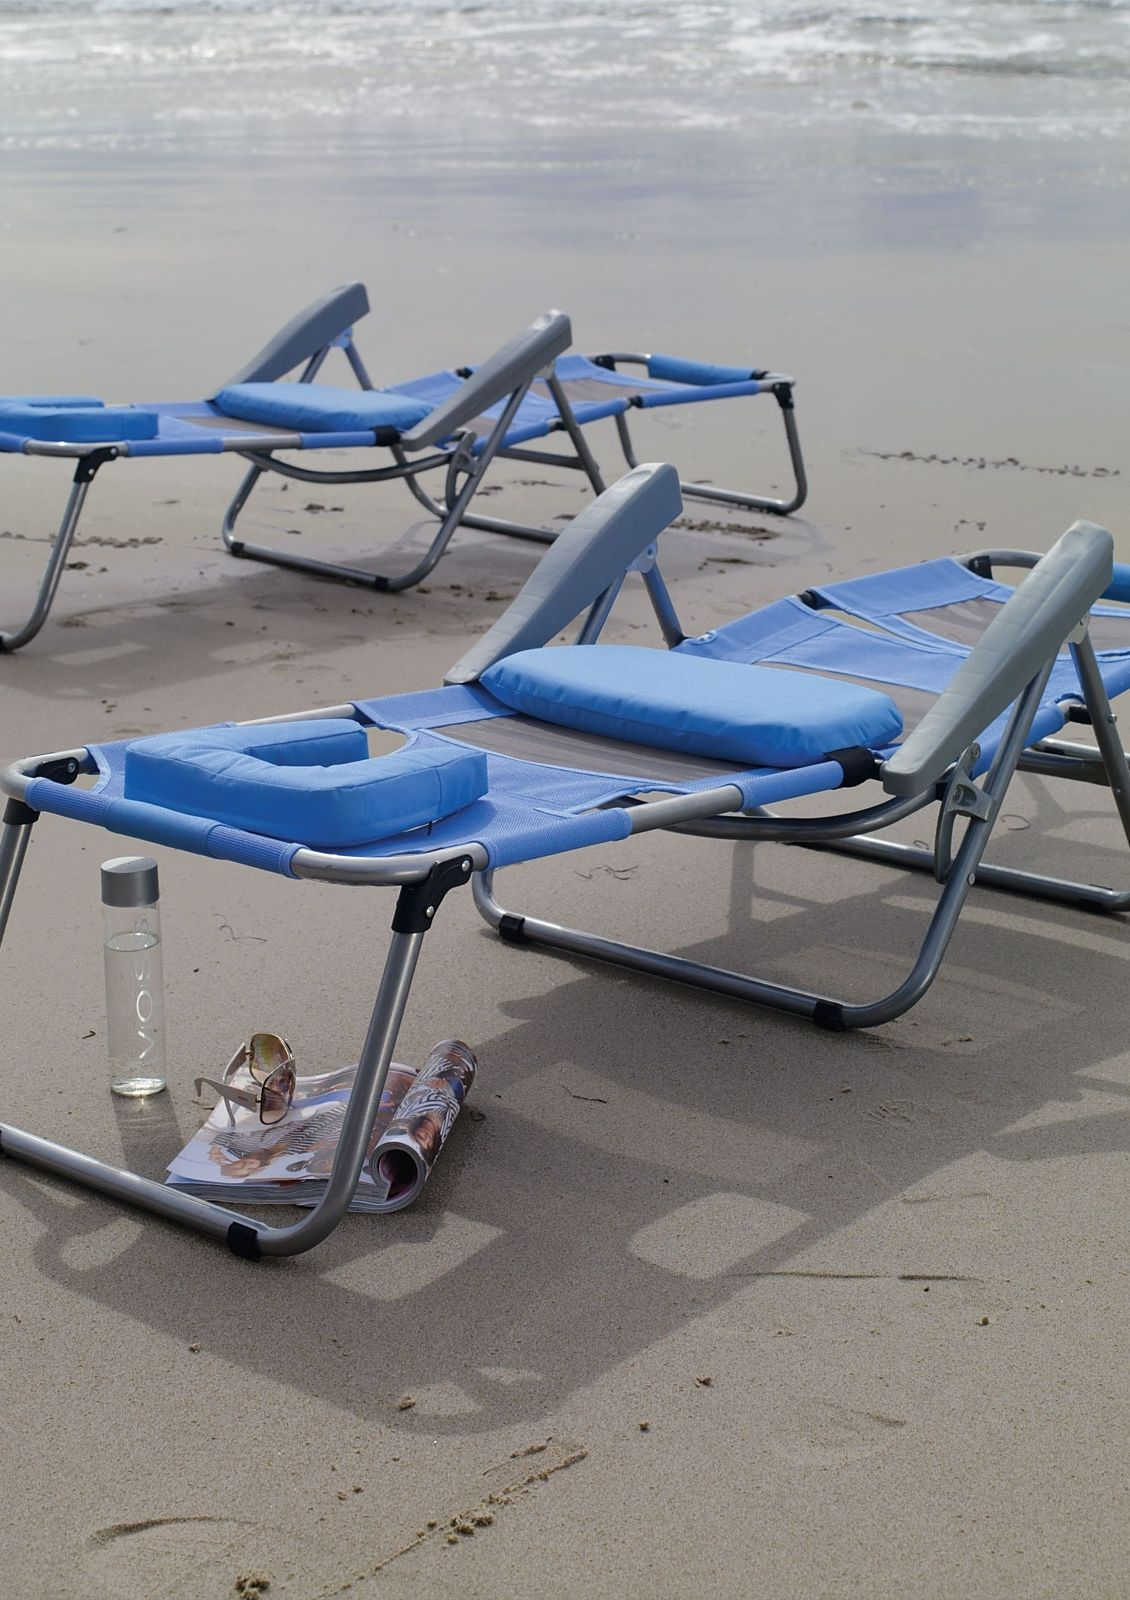 Our Exclusive Breezy Beach Sun Lounger Keeps You Cool And Comfortable The Seating Surface Is Made Of Breathable Quick Drying Duramesh That Allows Air